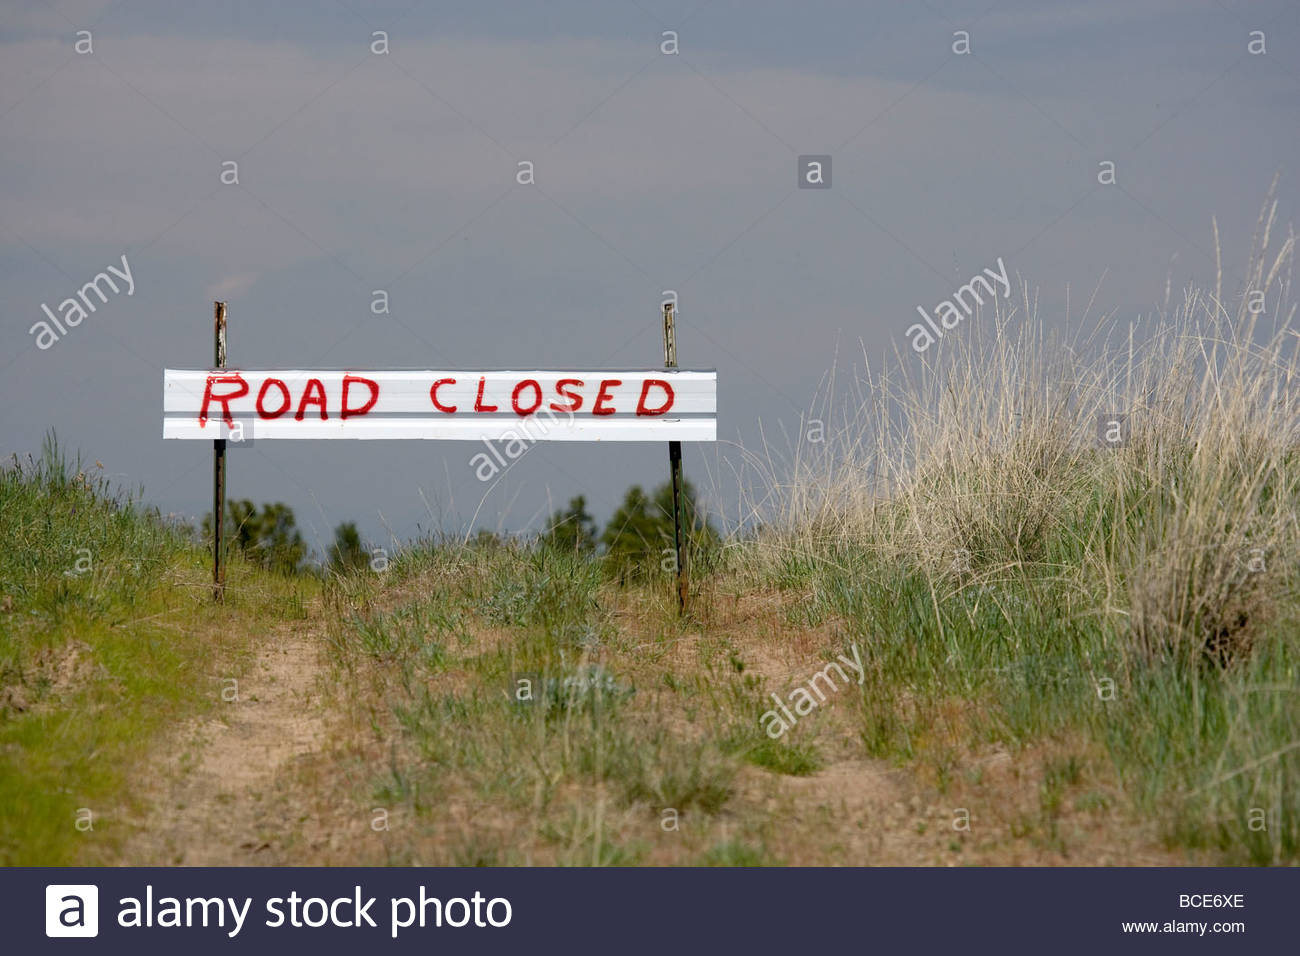 A 'Road Closed' sign keeps cars from visiting a ghost town. - Stock Image